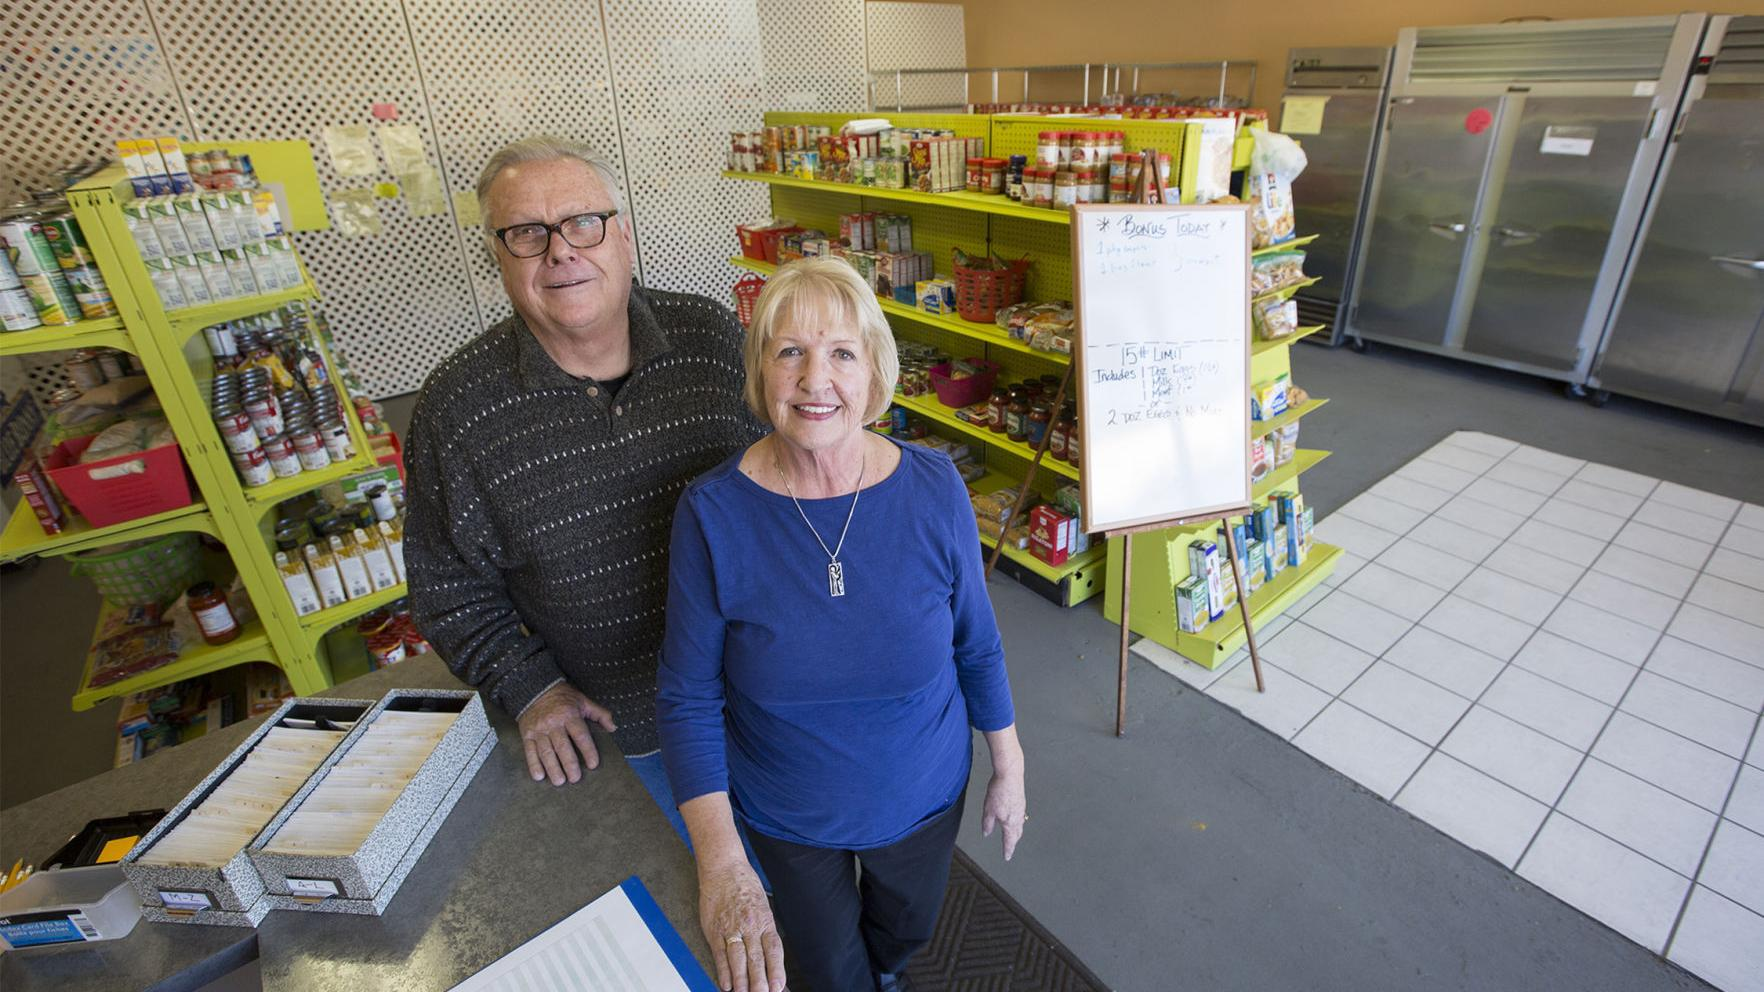 Momentum builds at People's Pantry in Flagstaff